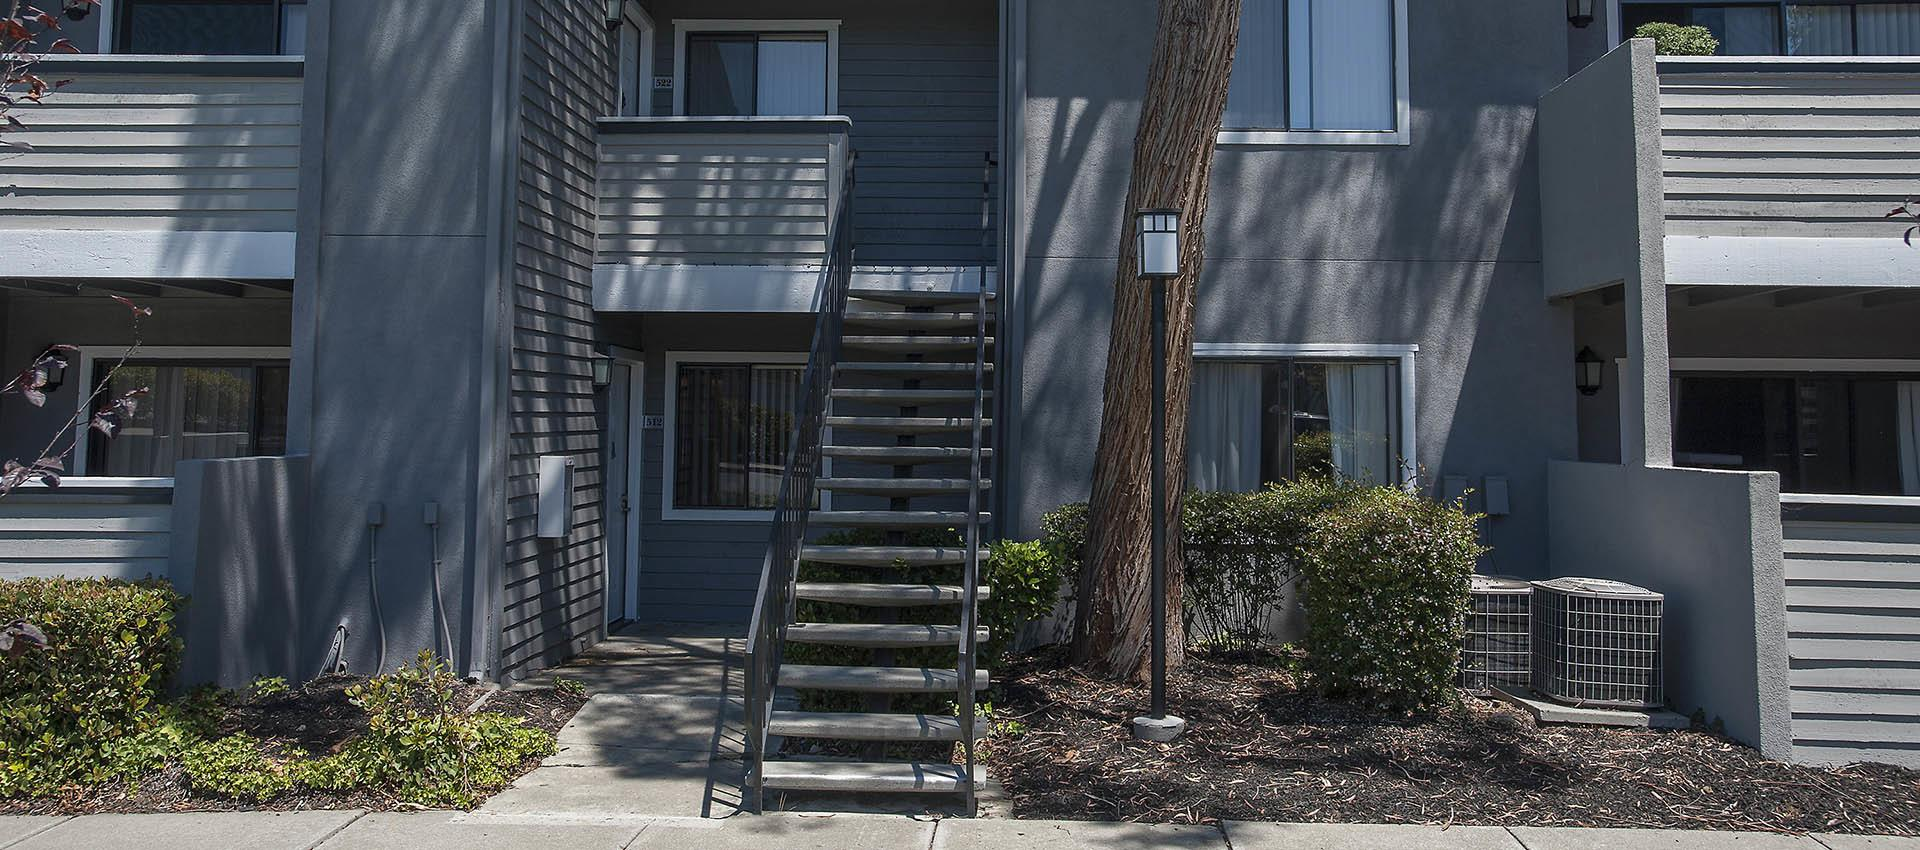 Stairs To Second Level Apartments at Plum Tree Apartment Homes in Martinez, CA